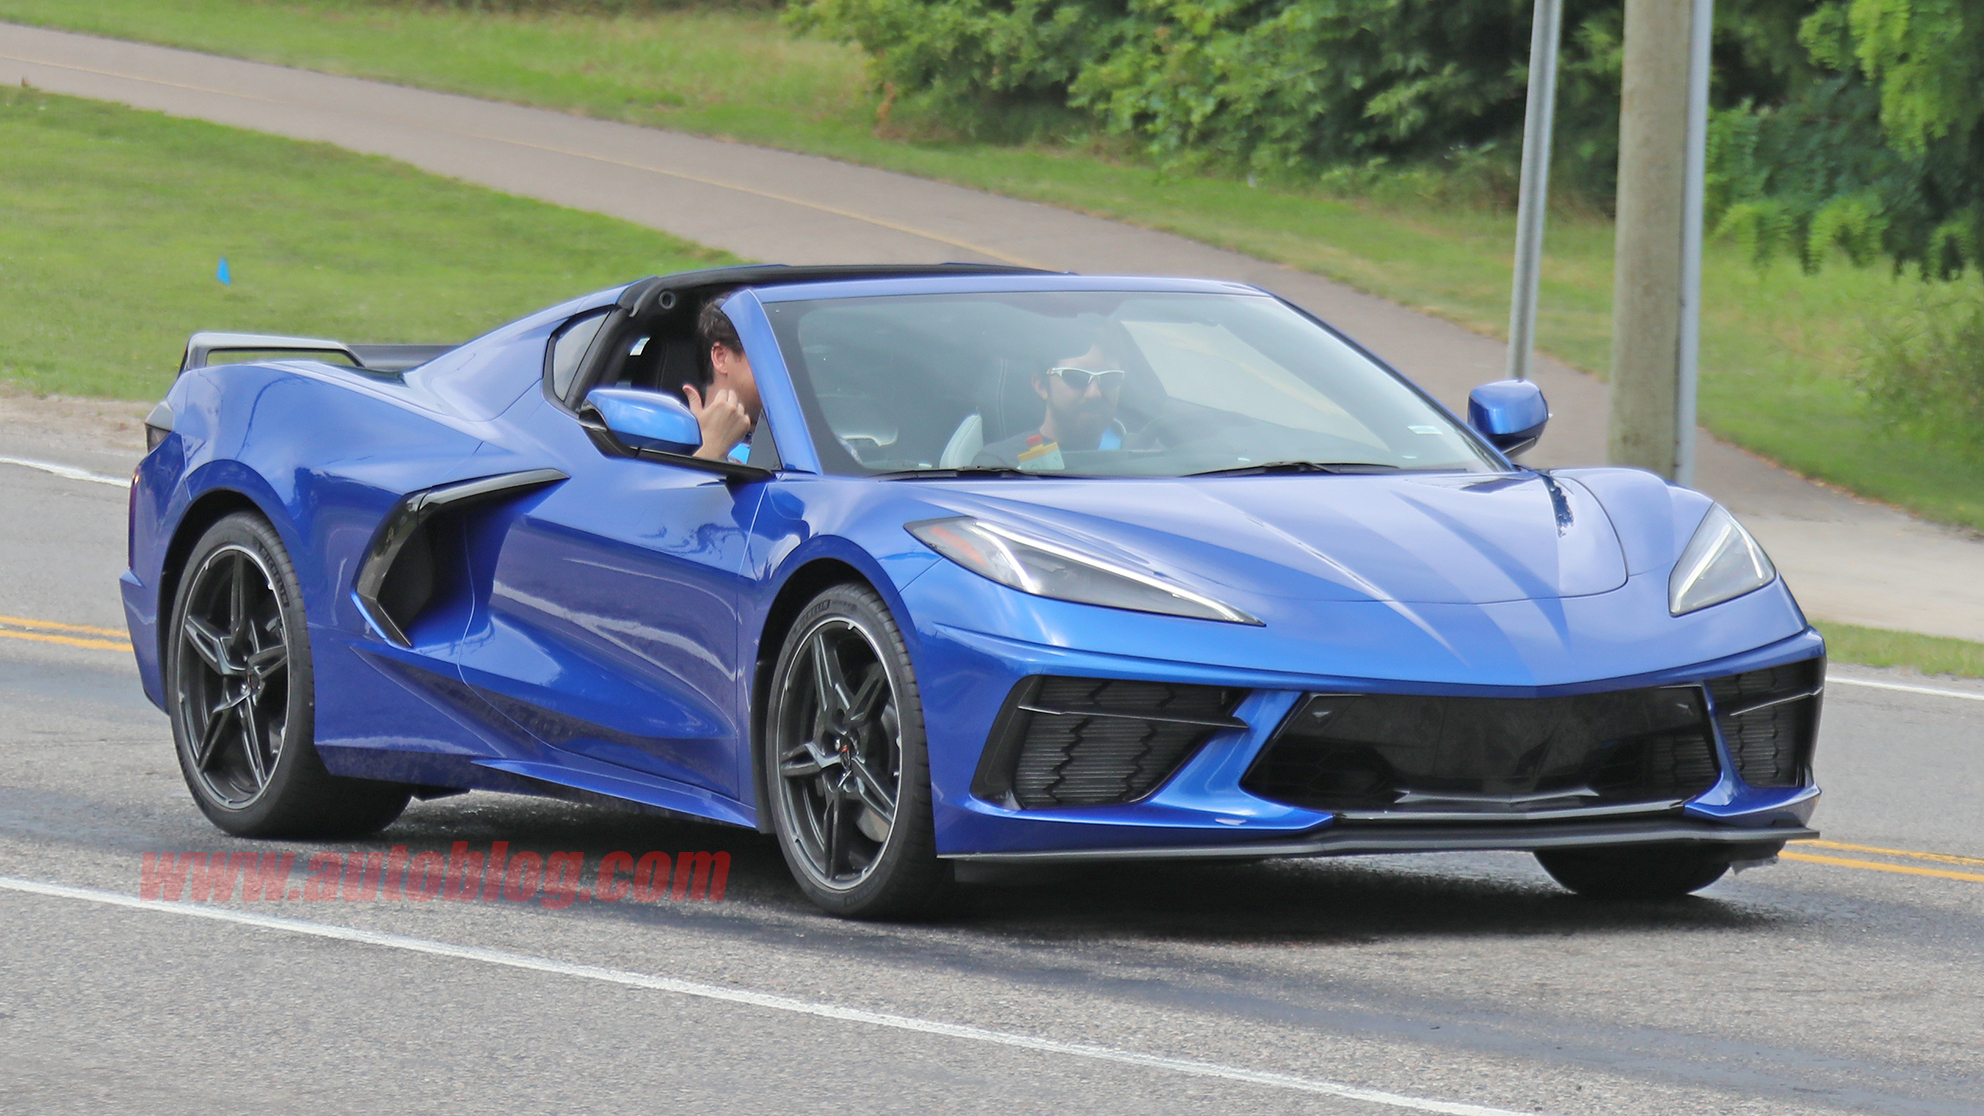 2020 Chevy Corvette Stingray C8 spied undisguised on ...